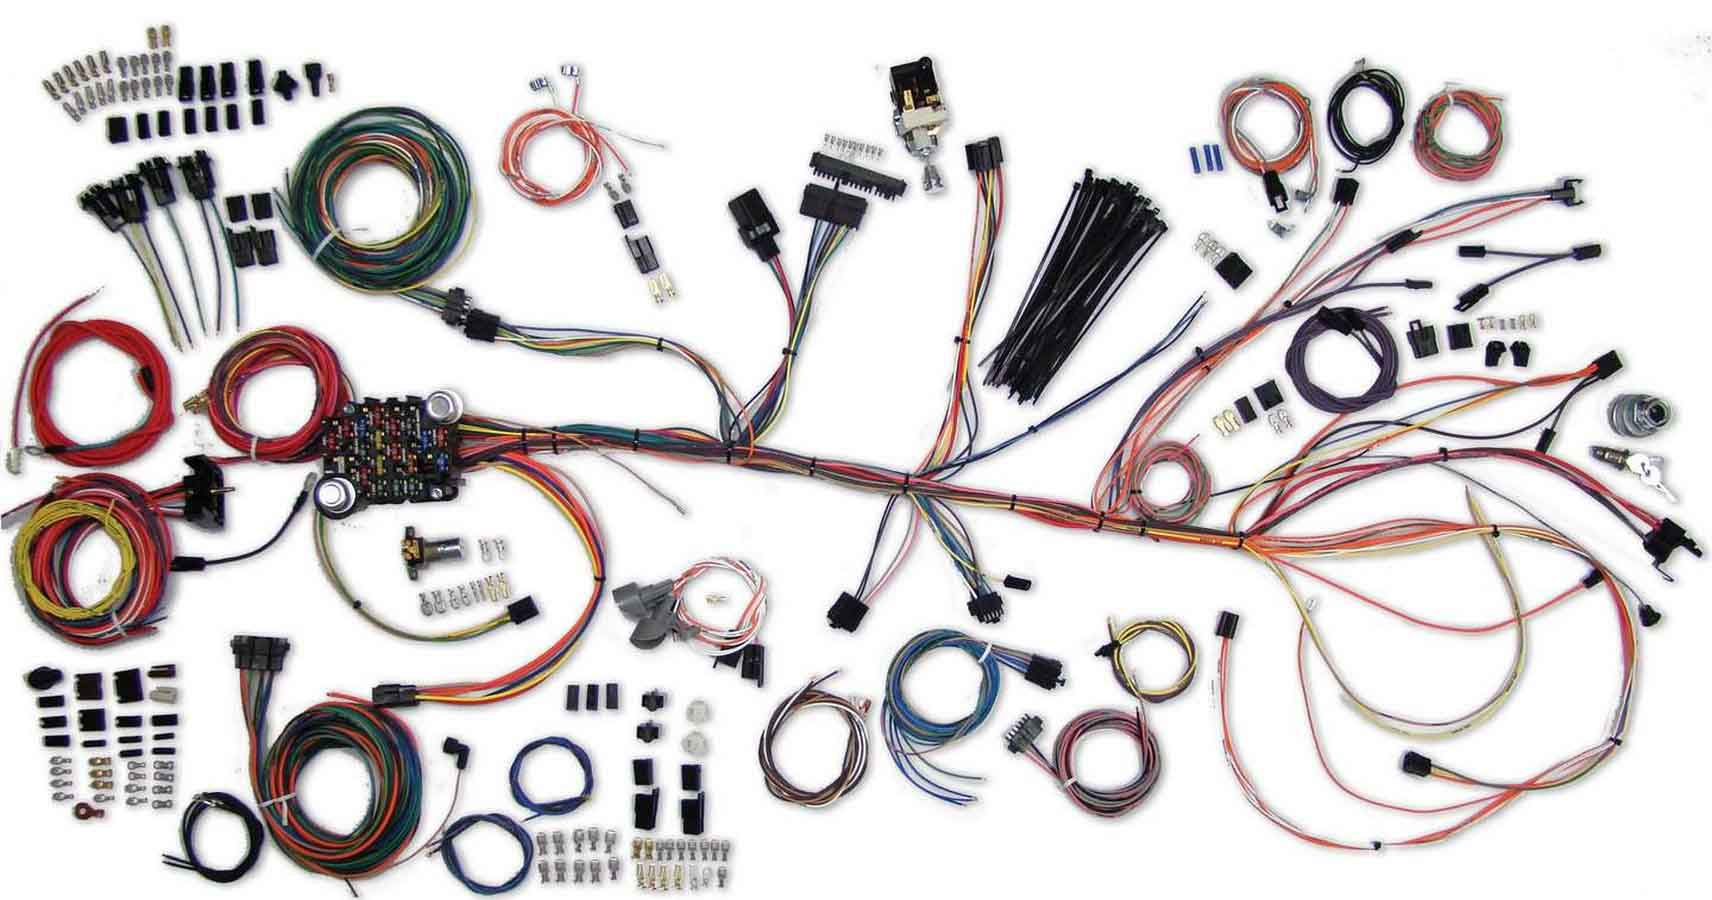 hight resolution of american auto wire diagrams wiring diagram imp american auto wire diagrams